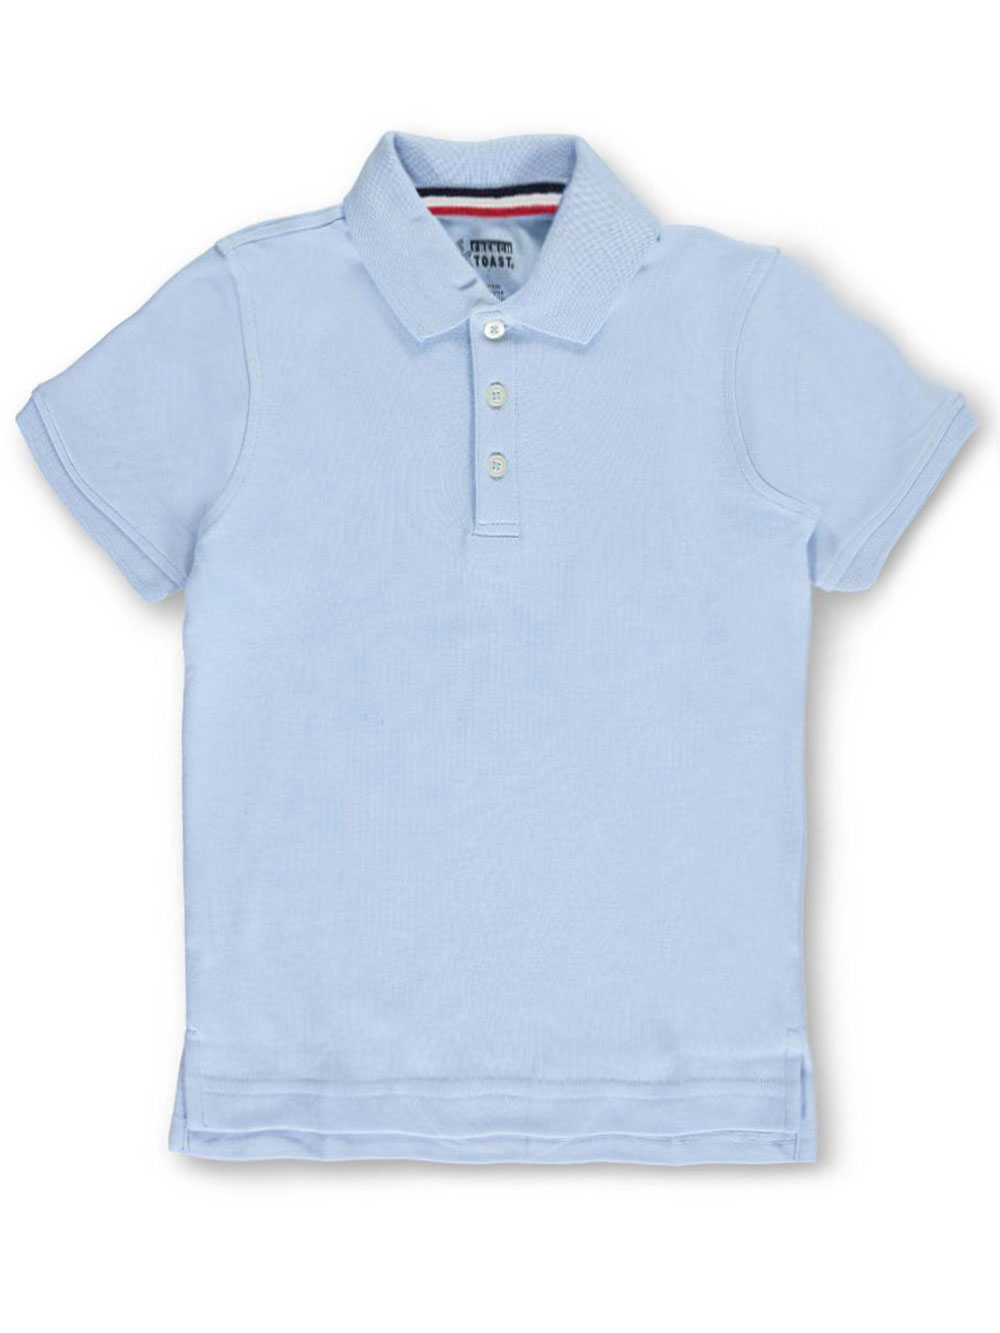 Size 12-14 Knit Polos for Girls